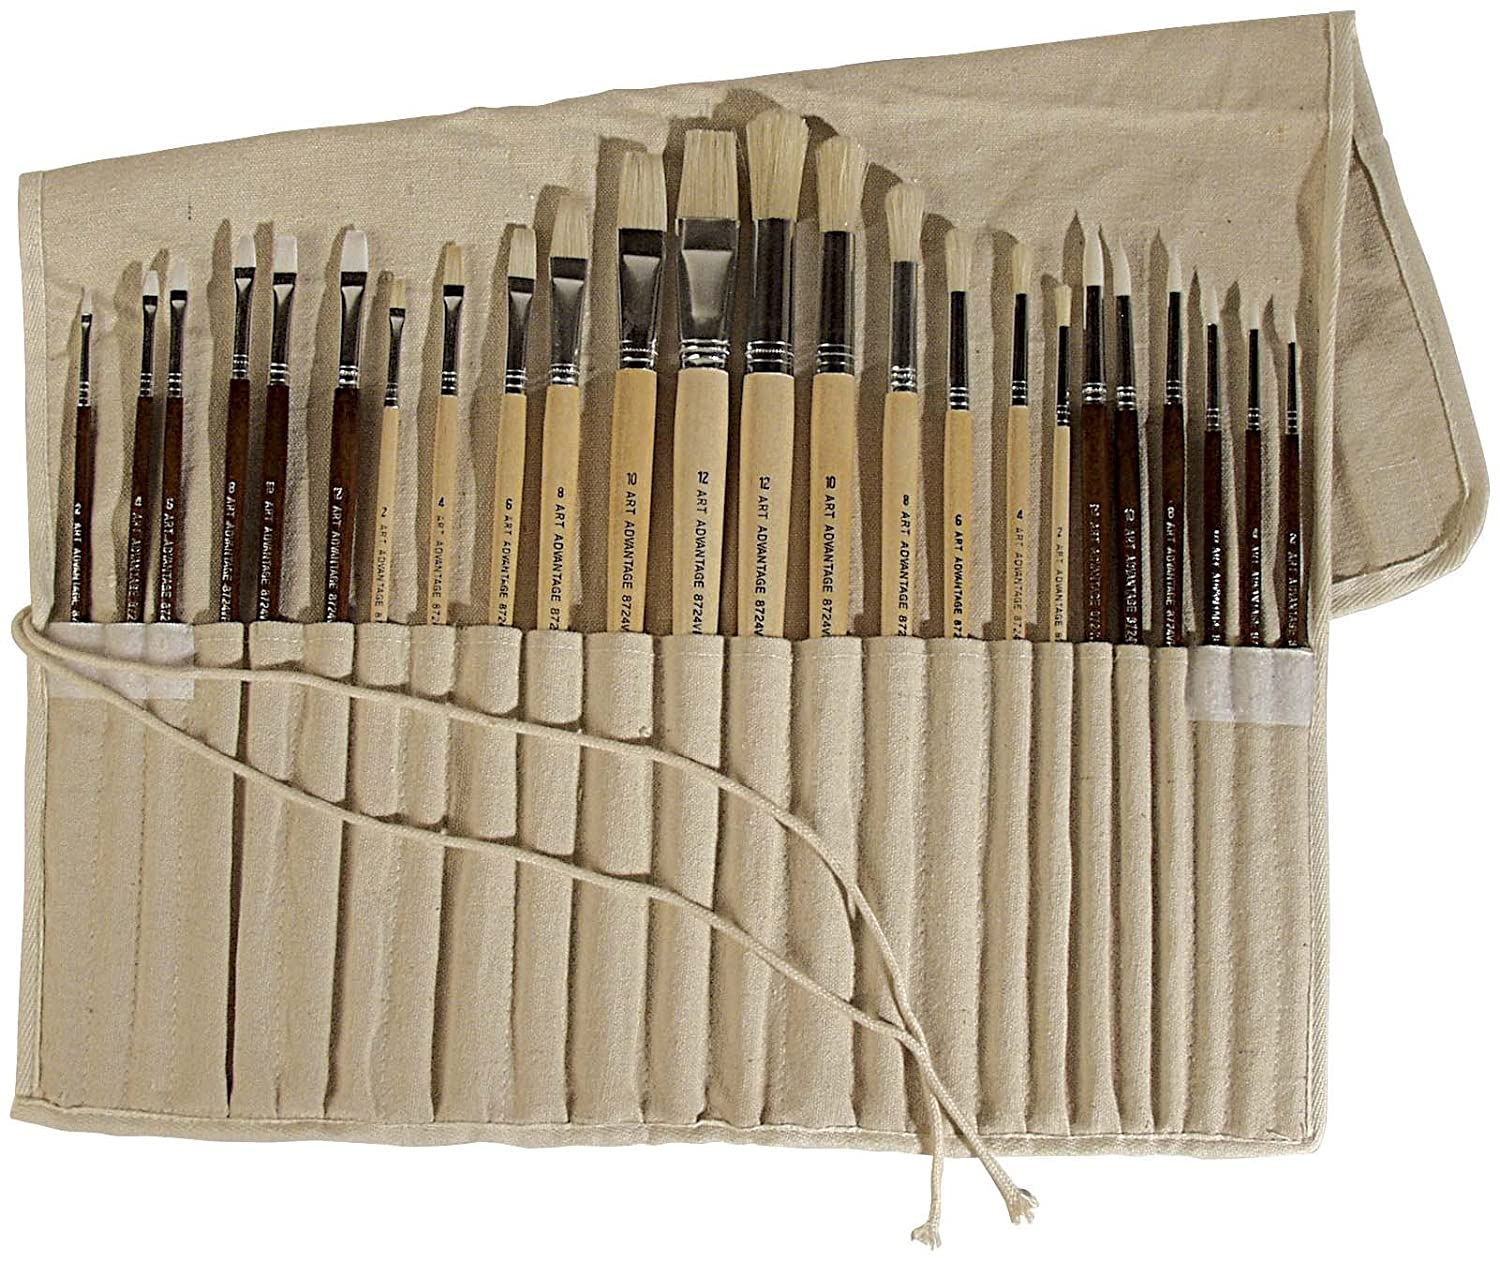 New 24 art advantage oil acrylic paint brush set synthetic for Canvas roll for painting